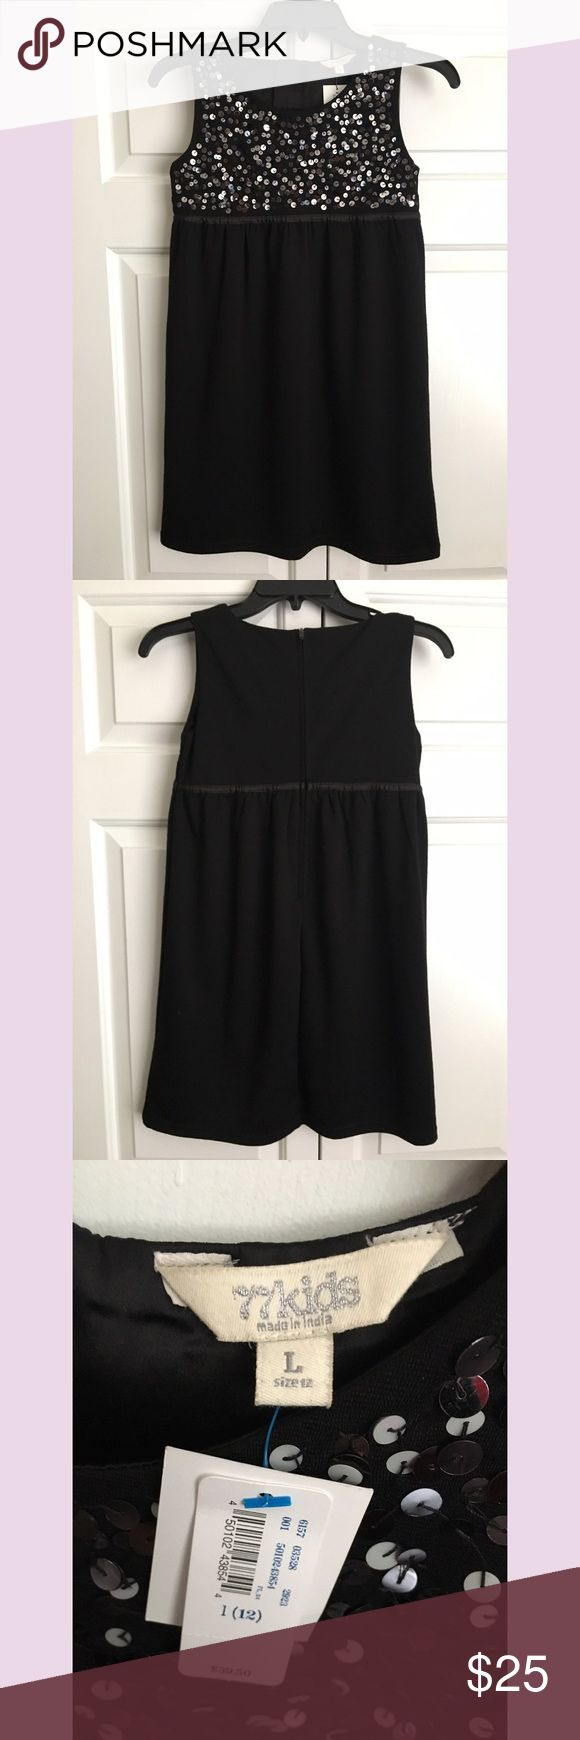 77Kids by American Eagle Girls Sparkly Black Dress Brand new with tags! Hard to find piece! Perfect for special events! Smoke and pet free home. Fully lined with a zipper in the back. Size large or 12. Poly/rayon/spandex blend. No trades.  item location: Bin 2. 77 Kids by American Eagle Dresses Formal